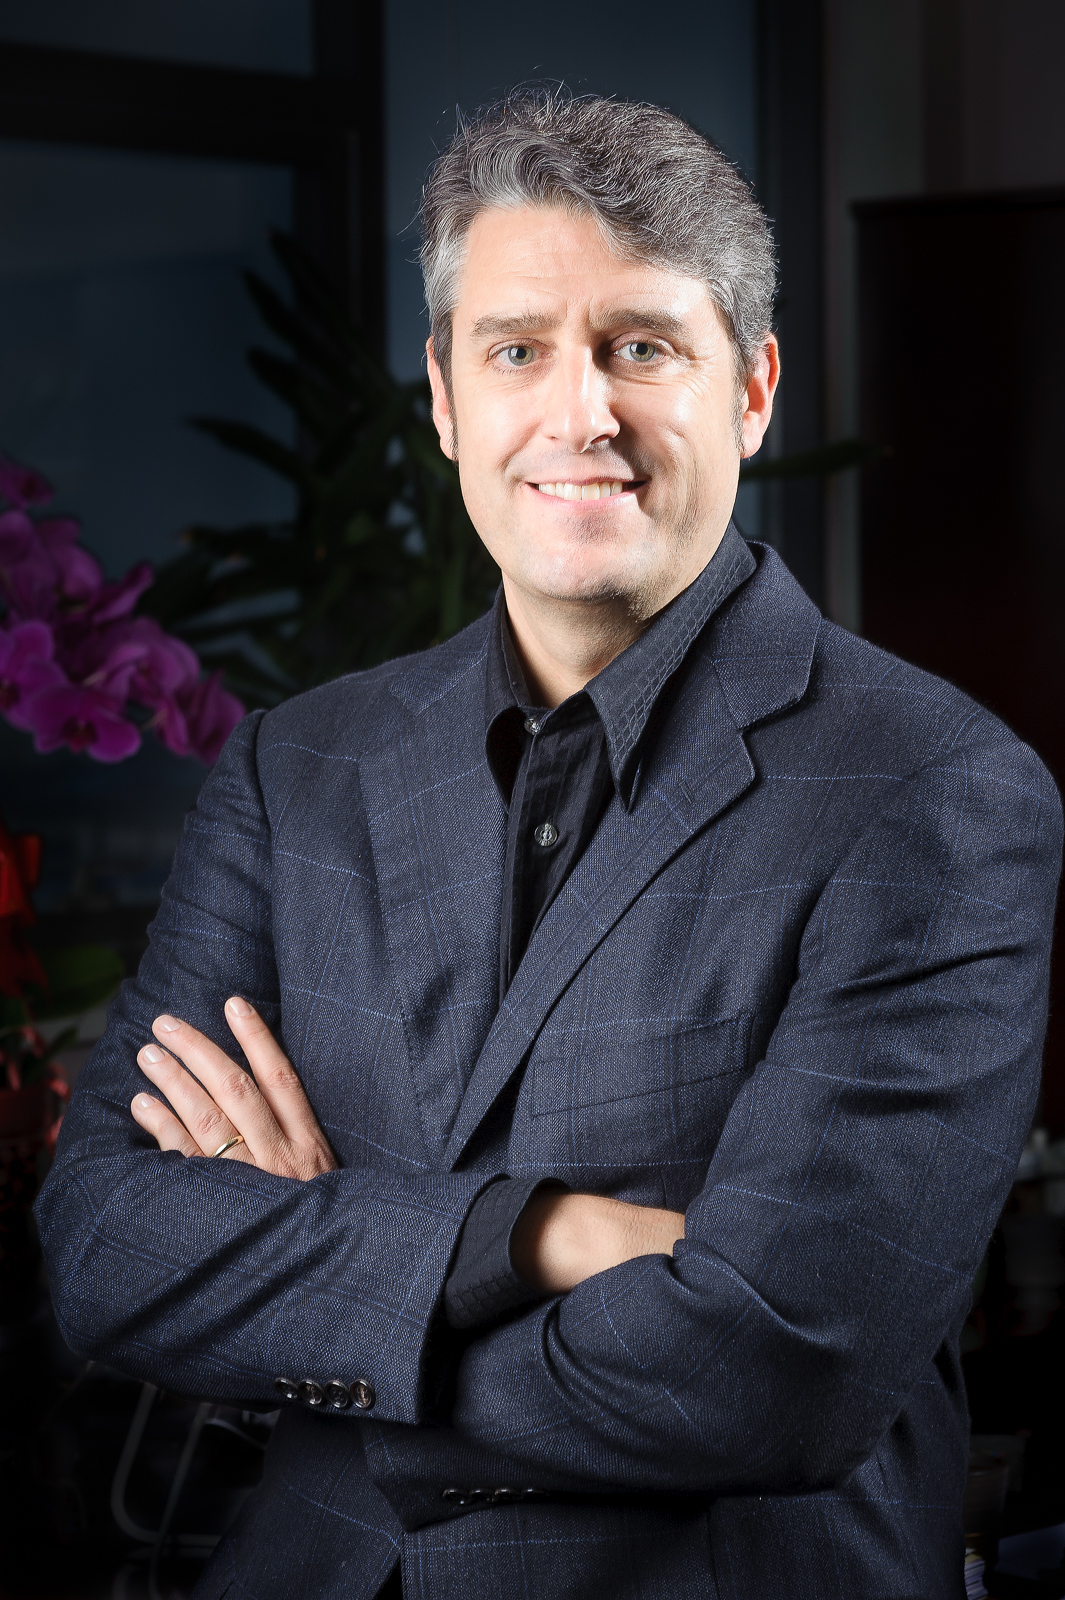 Robert Roche | Owner of Gallup Land Partners